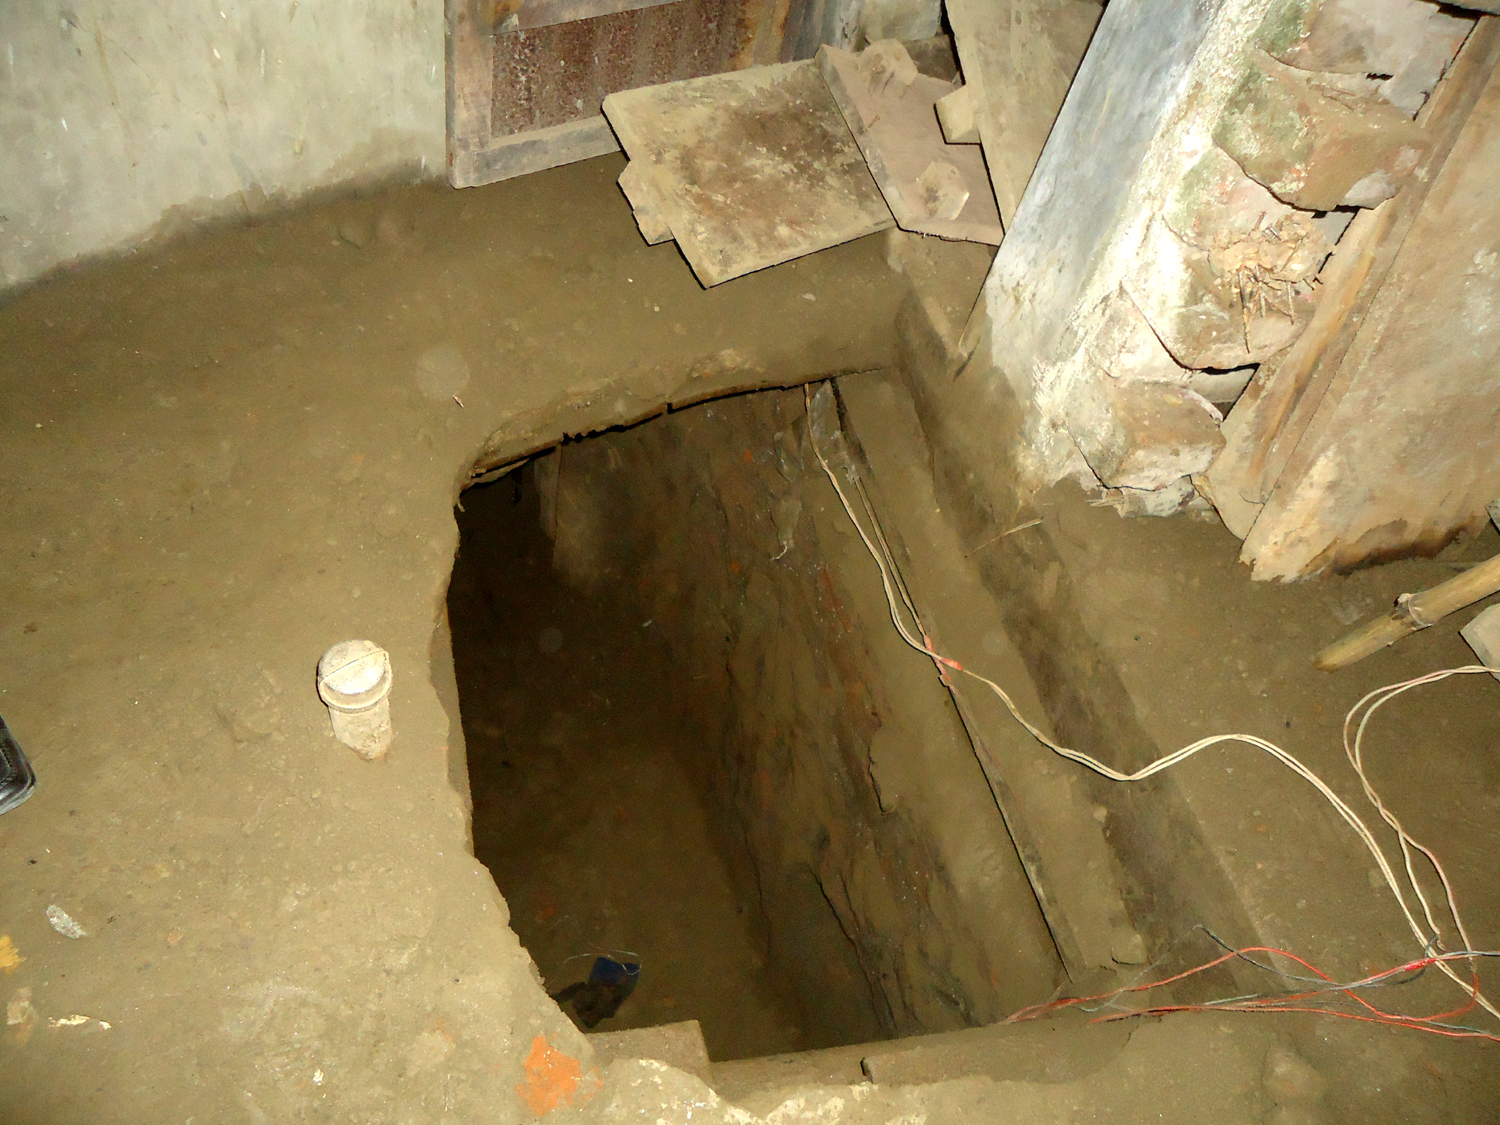 Robbers took away Tk 16.40 crore by digging a tunnel into the bank's vault in Isa Khan Road of Rathkhola area in the district town.  Star file photo